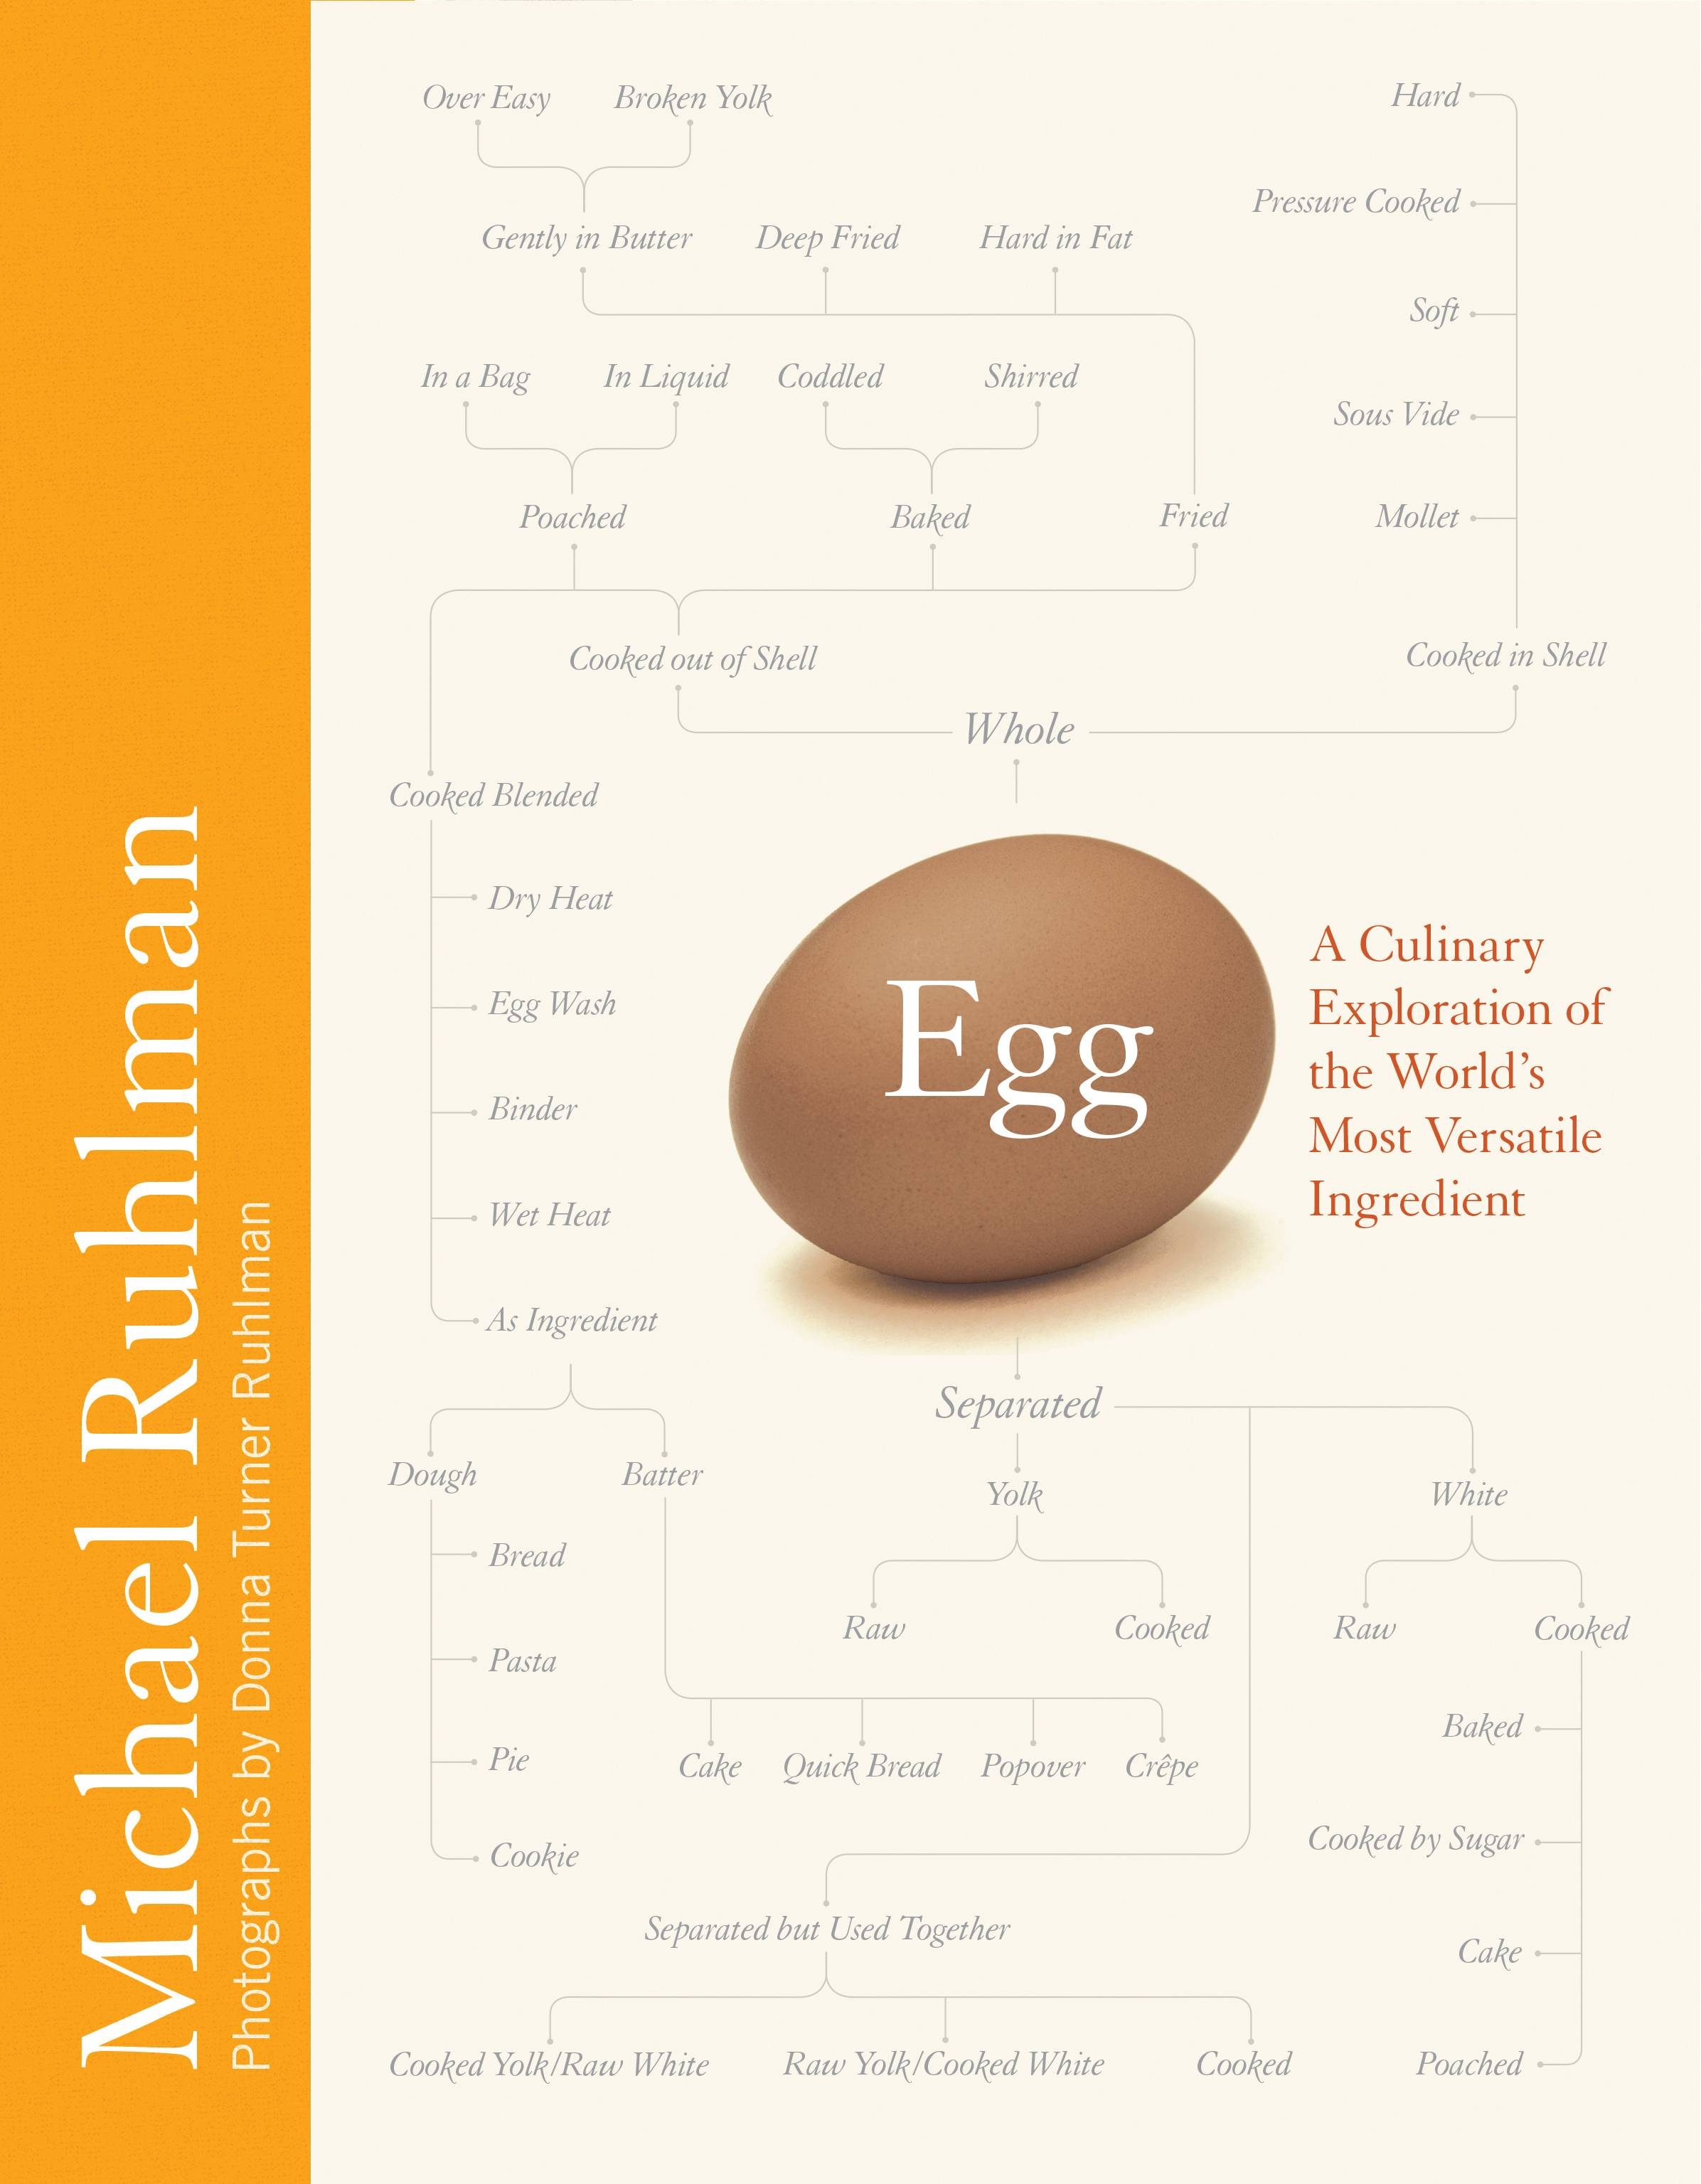 """Egg: A Culinary Exploration of the World's Most Versatile Ingredient"" by Michael Ruhlman"